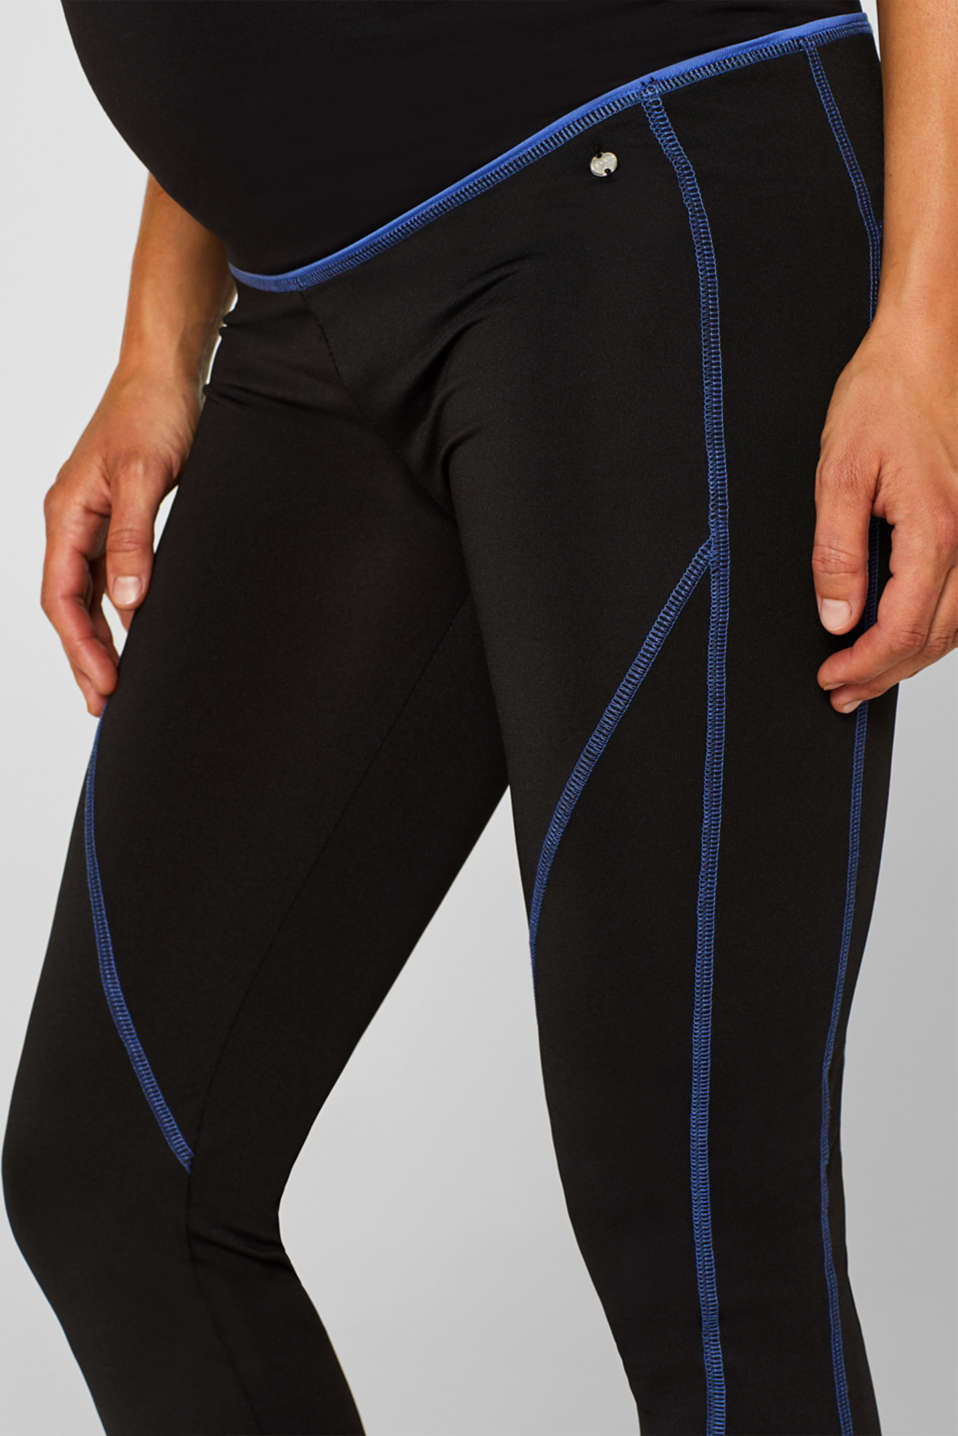 Leggings with contrasting stitching, over-bump waistband, LCBLACK, detail image number 2